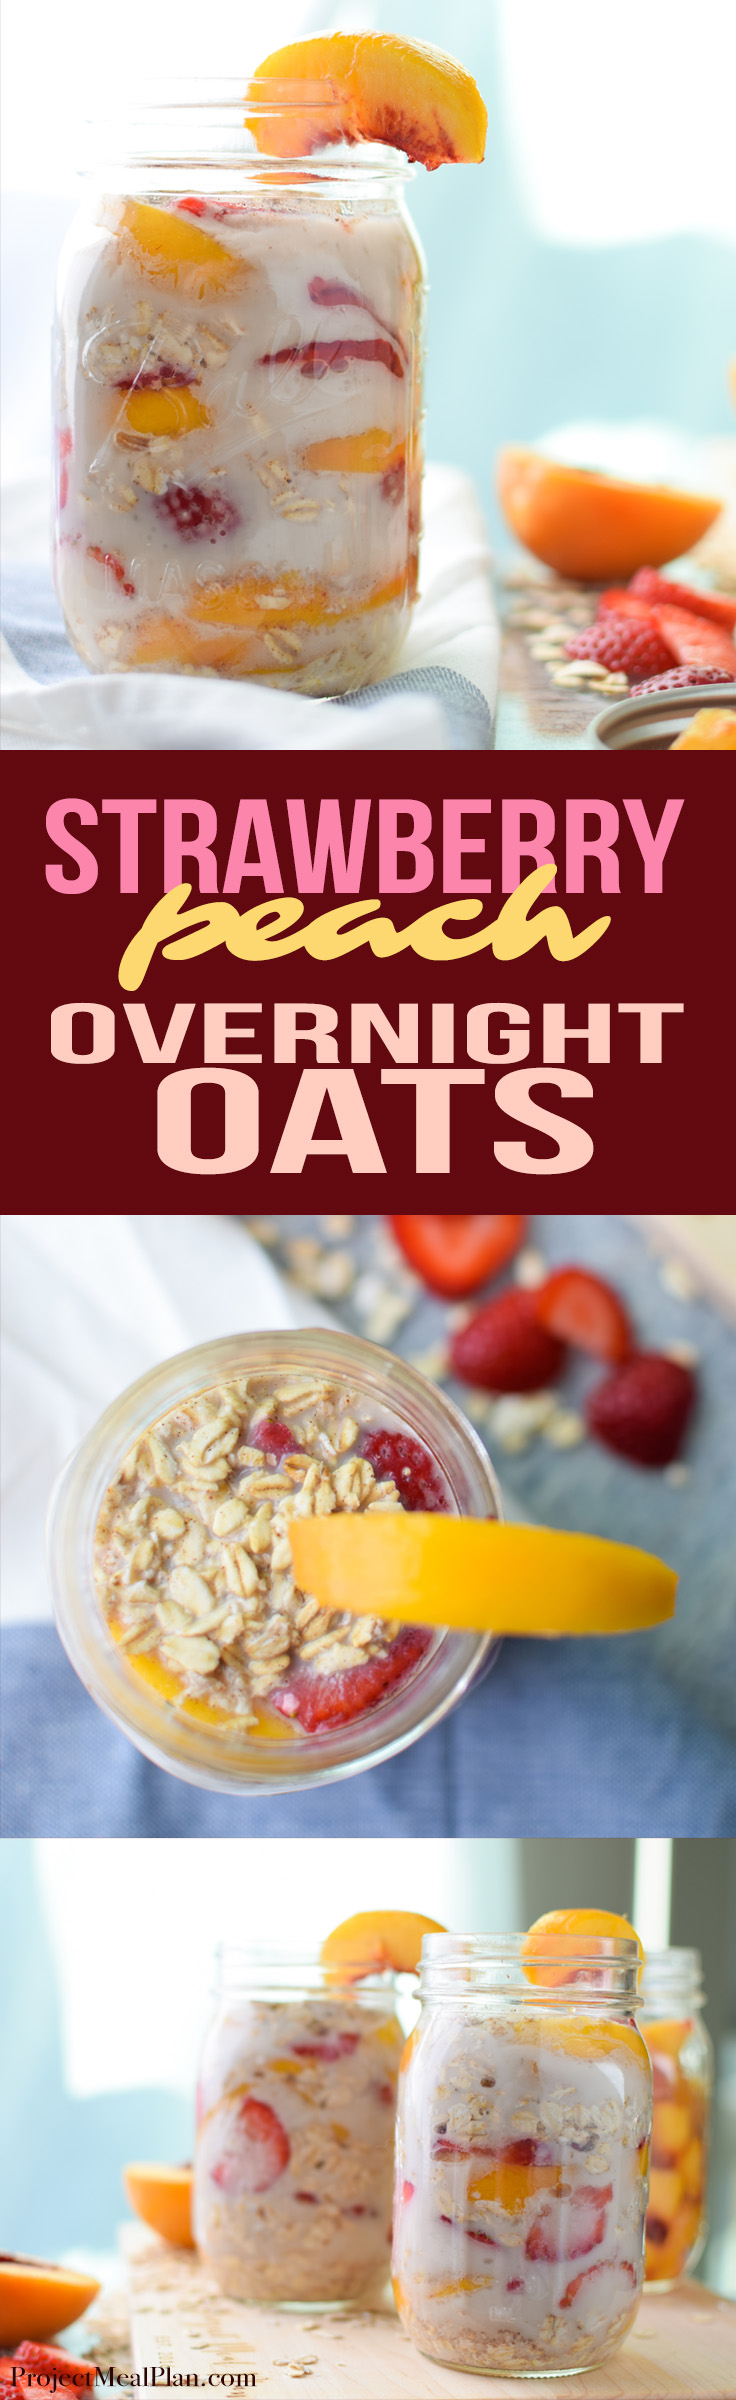 Strawberry Peach Overnight Oats Recipe - Pull this super tasty treat out of the fridge in the morning for some filling oats, strawberries and peaches in almond milk! Sooo creamy! - ProjectMealPlan.com